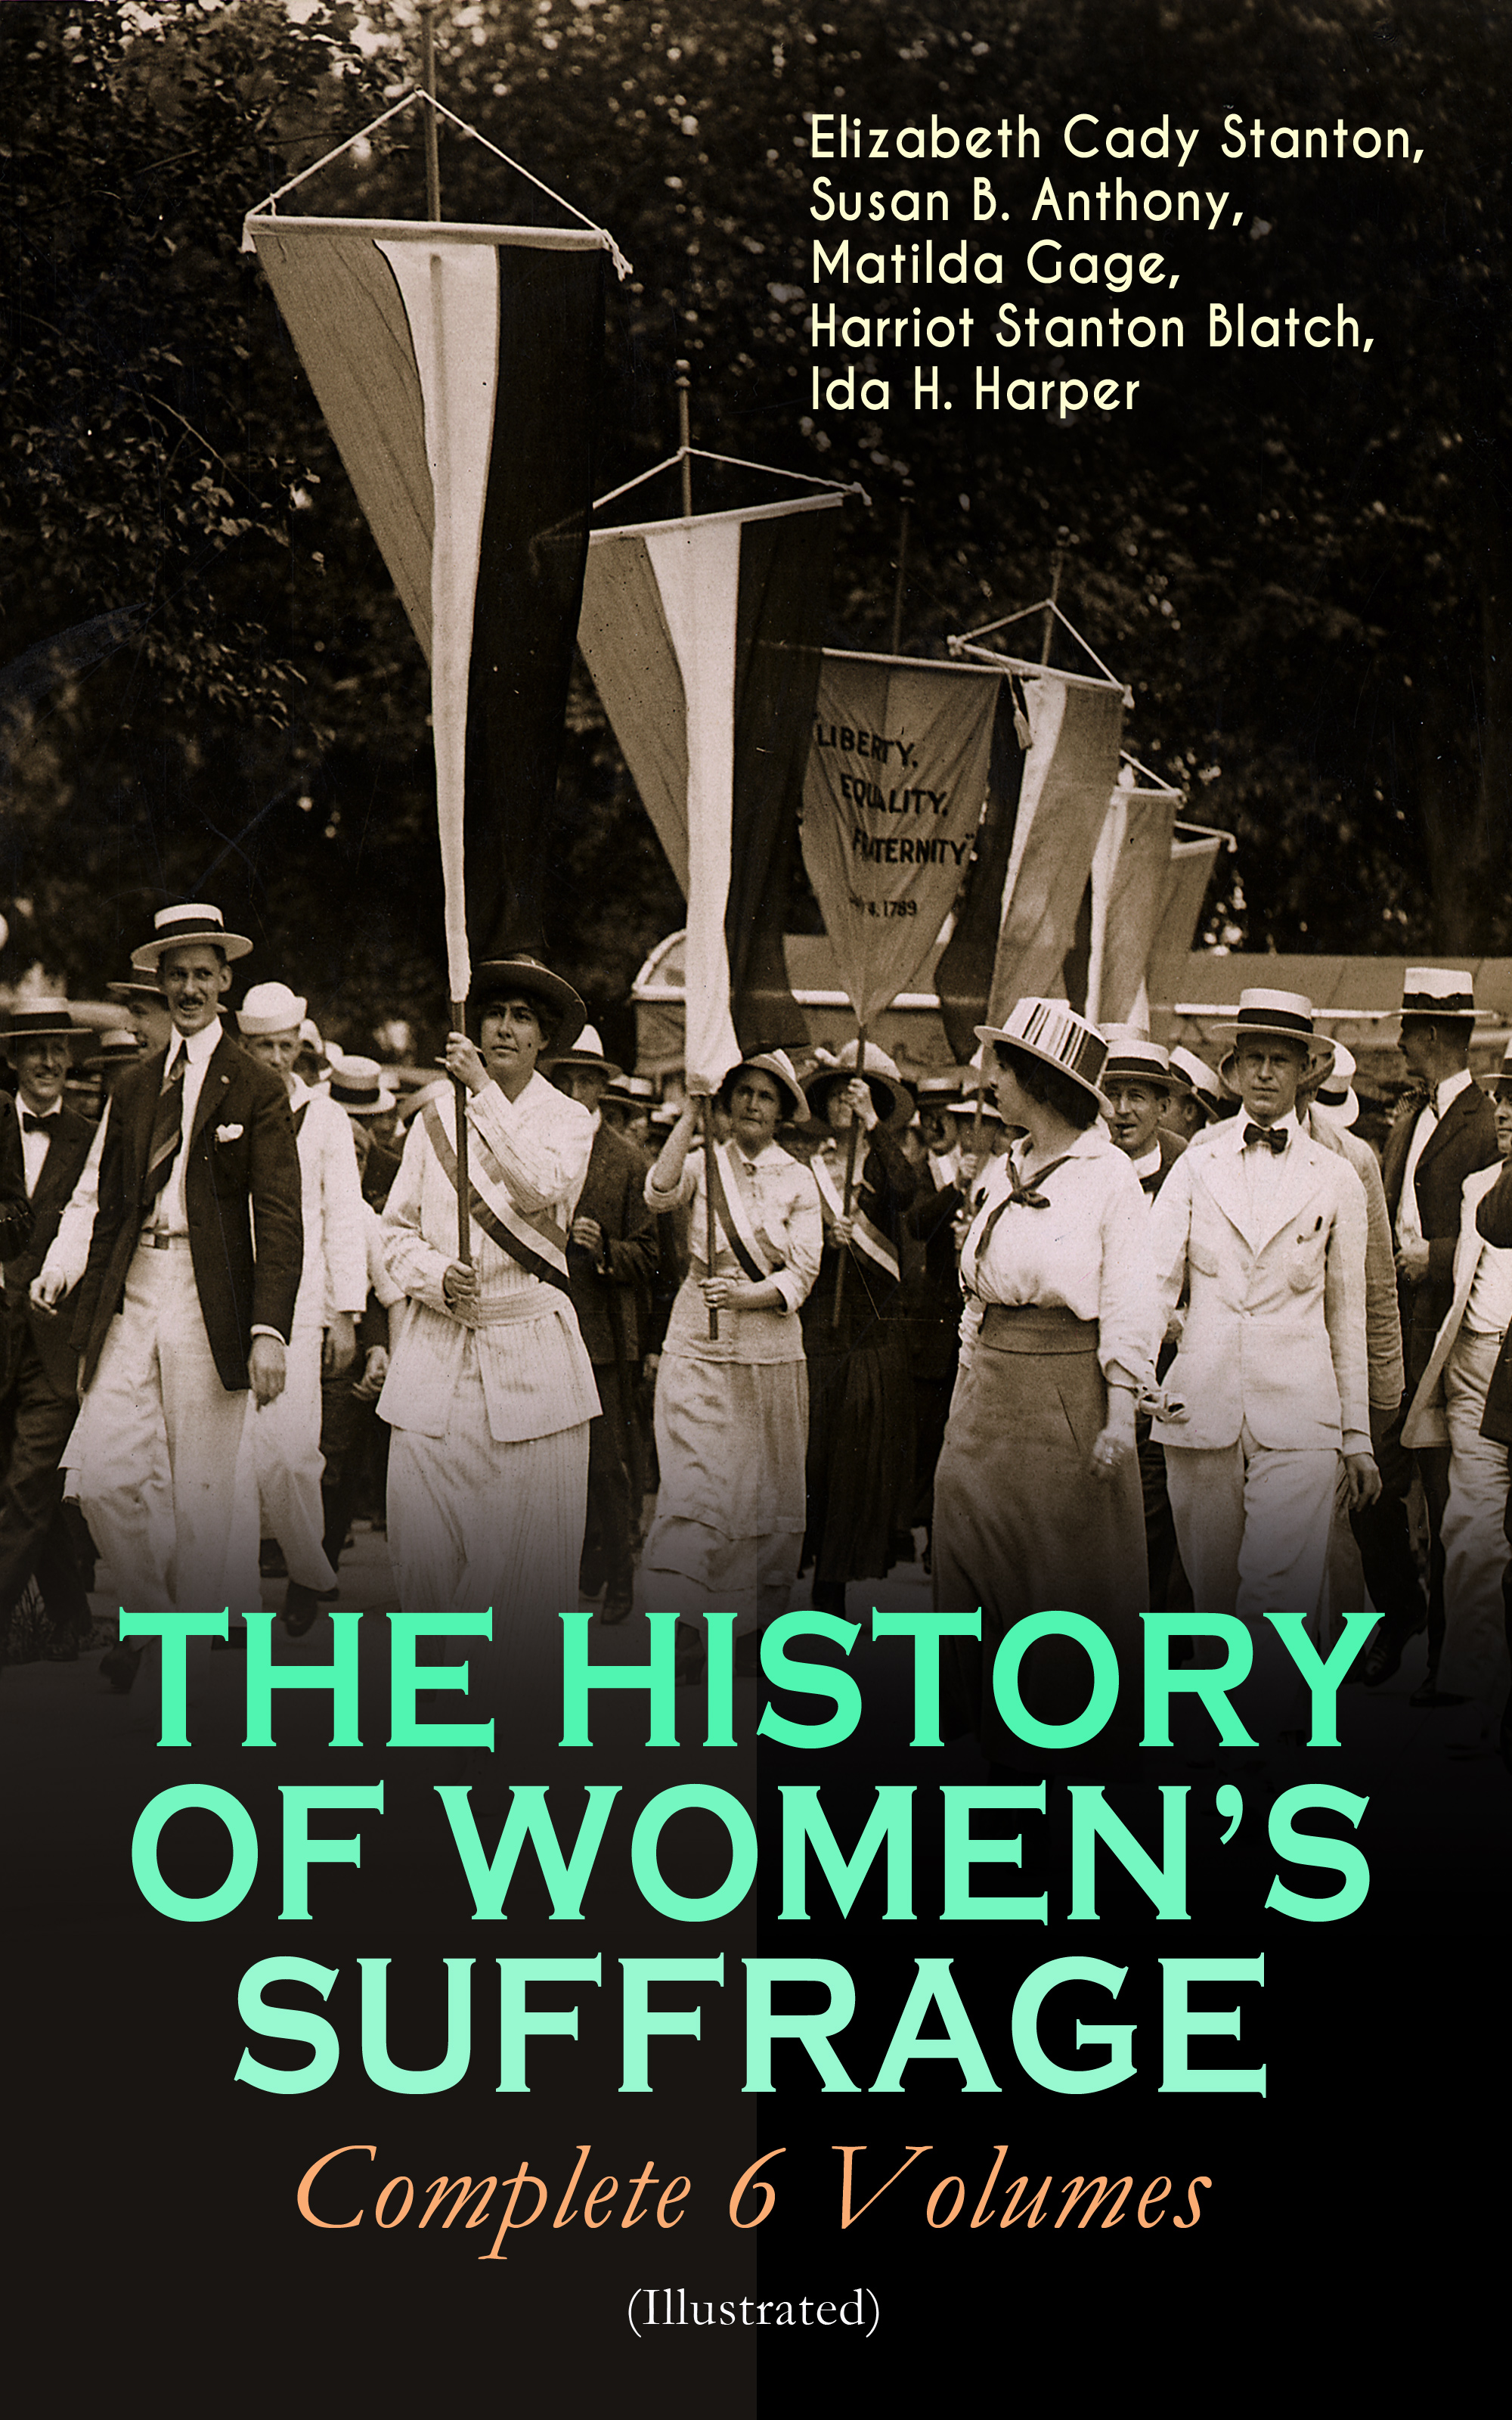 Gage Matilda Joslyn THE HISTORY OF WOMEN'S SUFFRAGE - Complete 6 Volumes (Illustrated) london the illustrated history